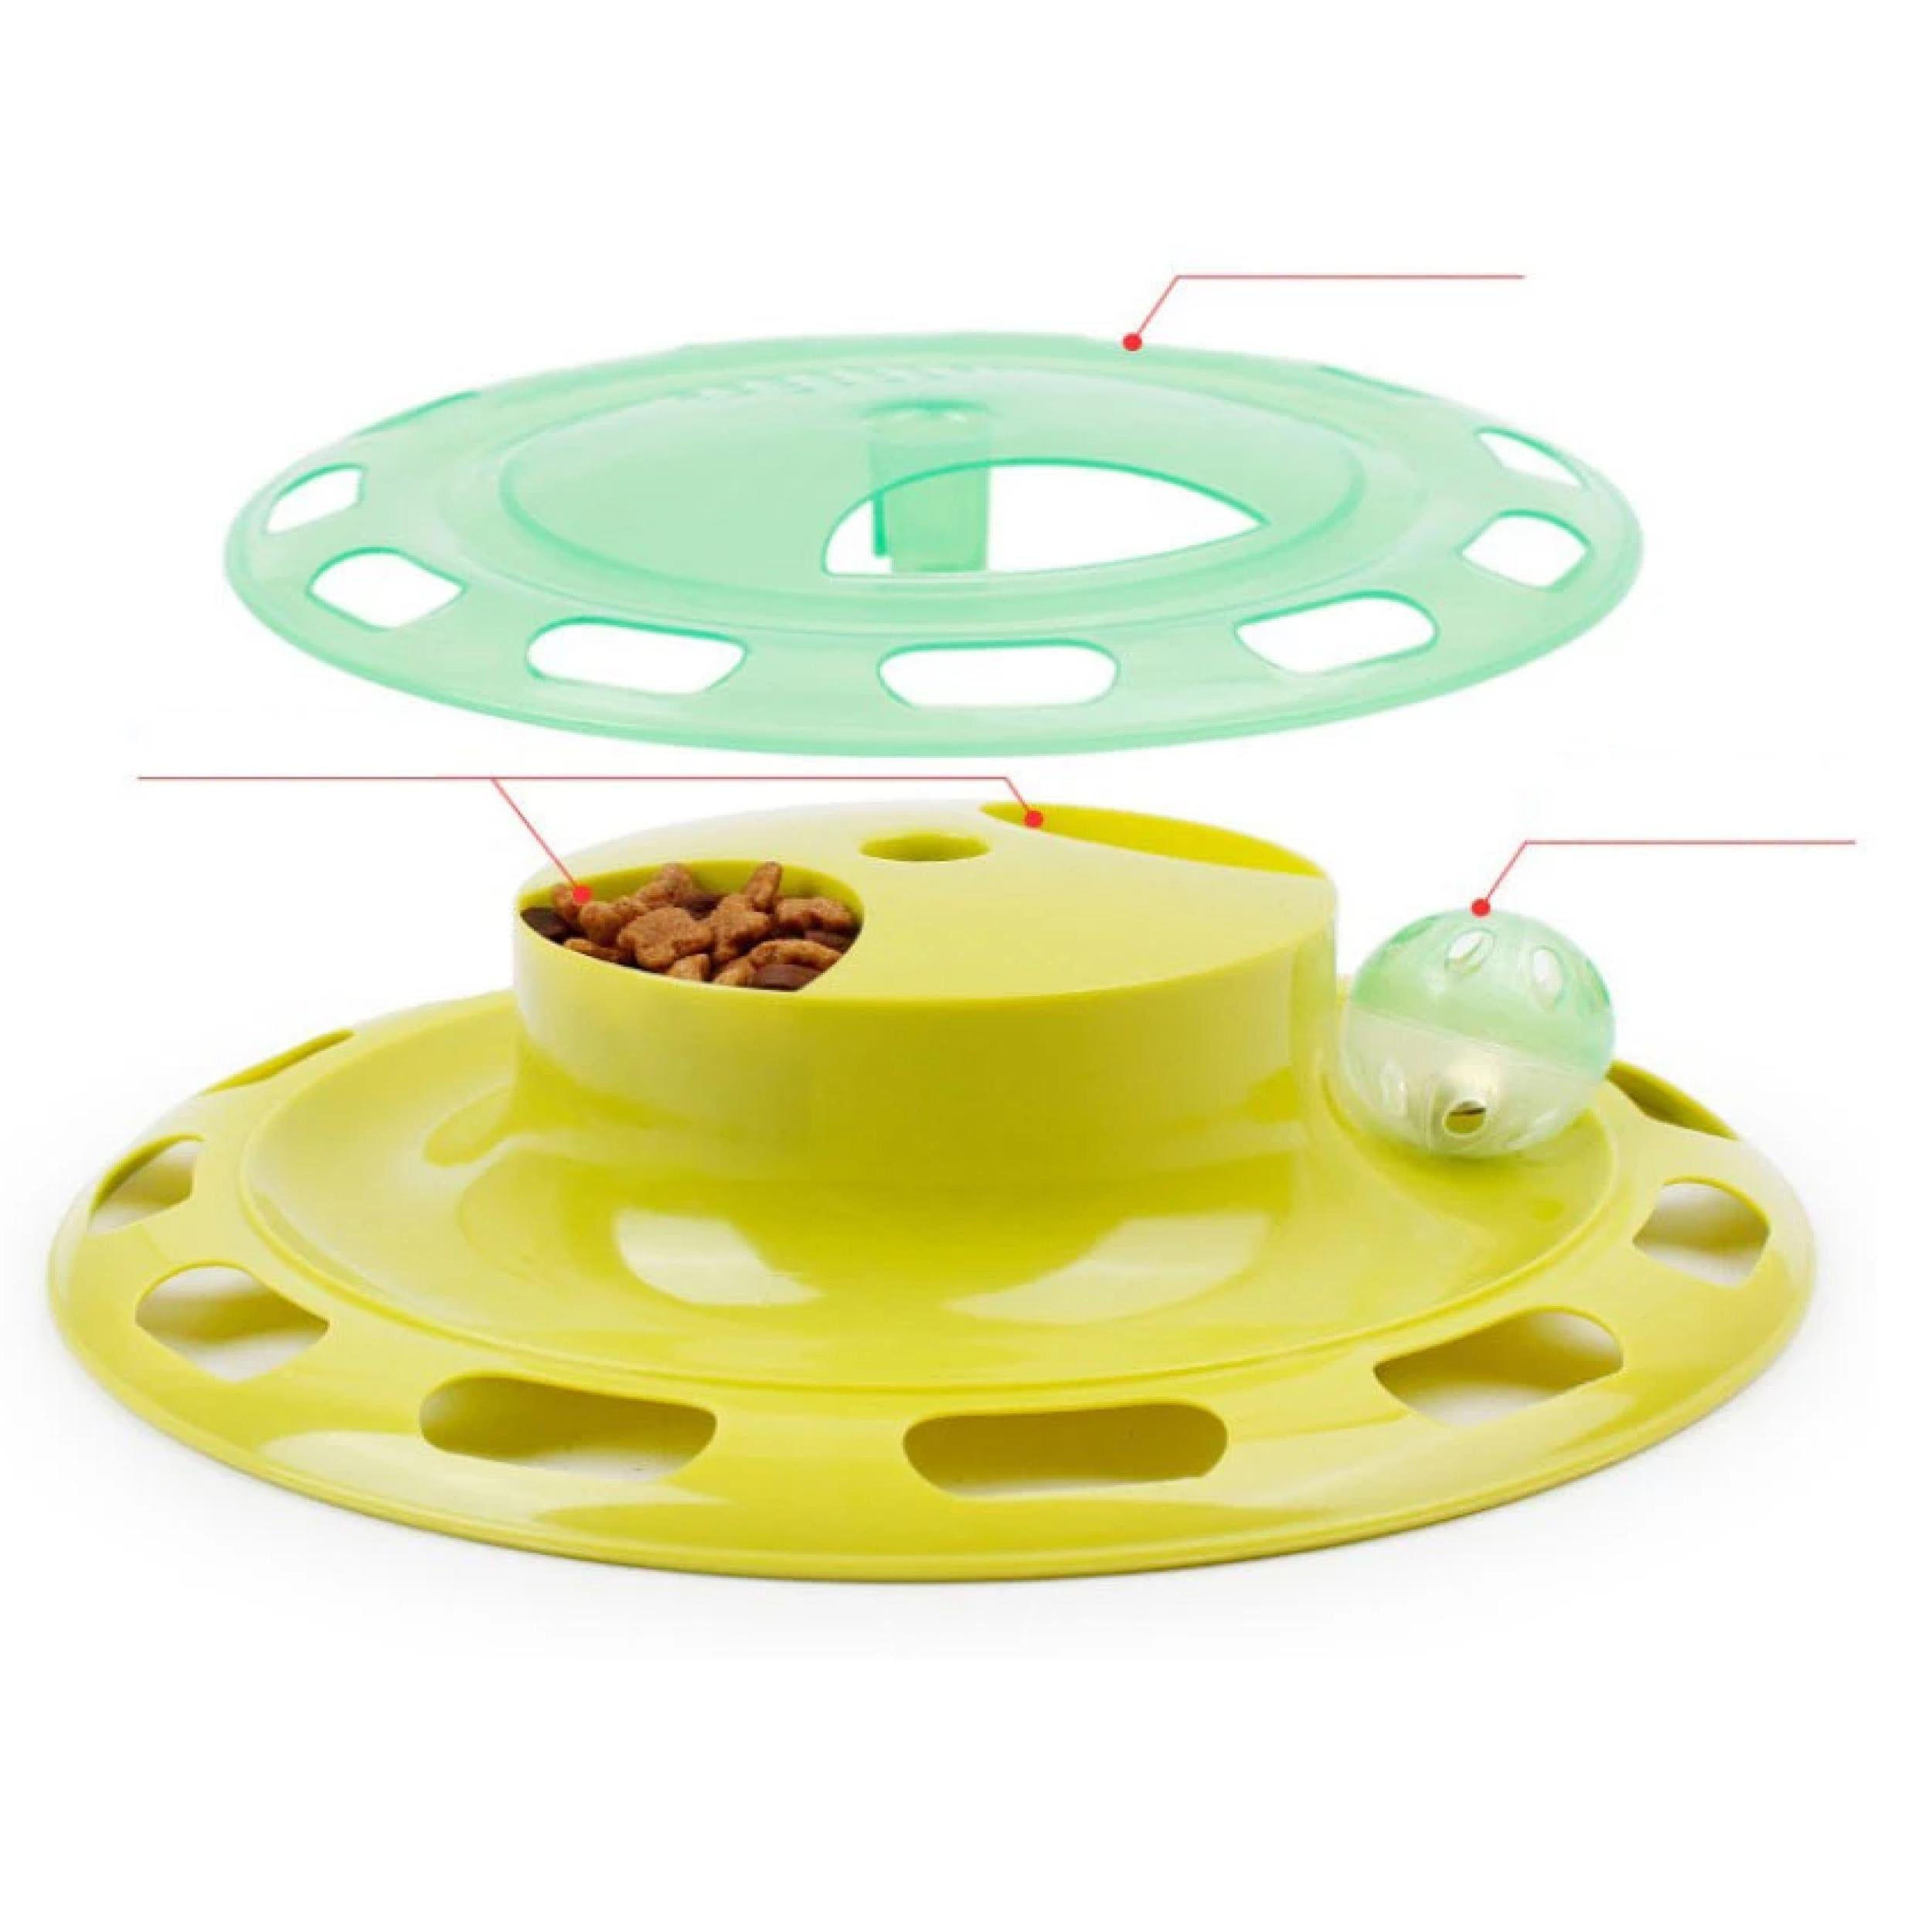 Cat Truntable Interactive Play Toy - Poochles